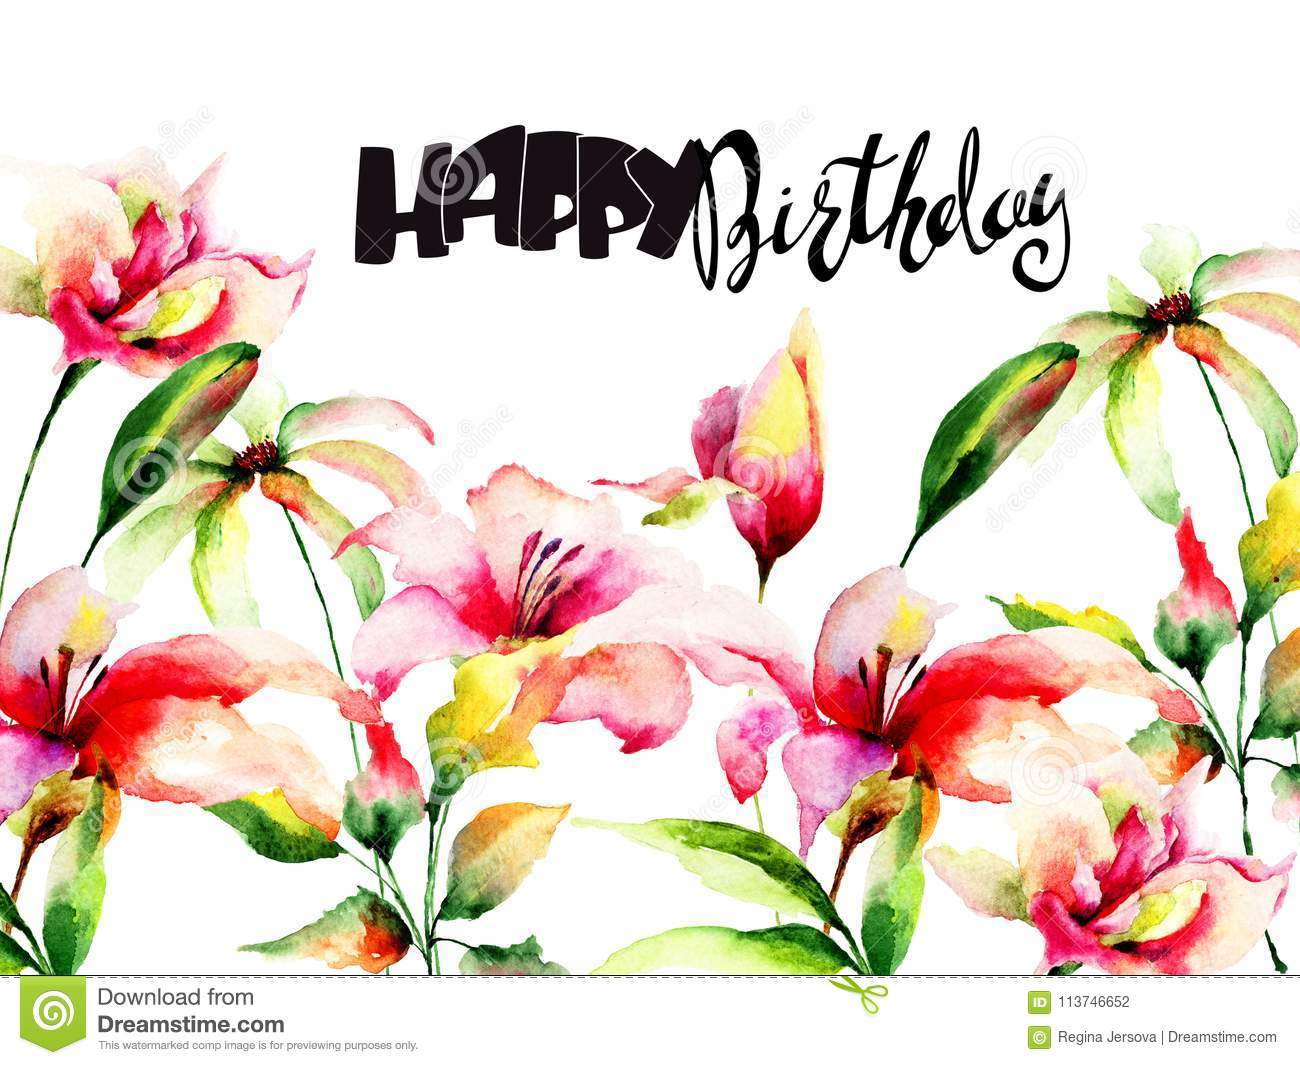 Lily flowers with title happy birthday stock illustration download lily flowers with title happy birthday stock illustration illustration of birthday flower izmirmasajfo